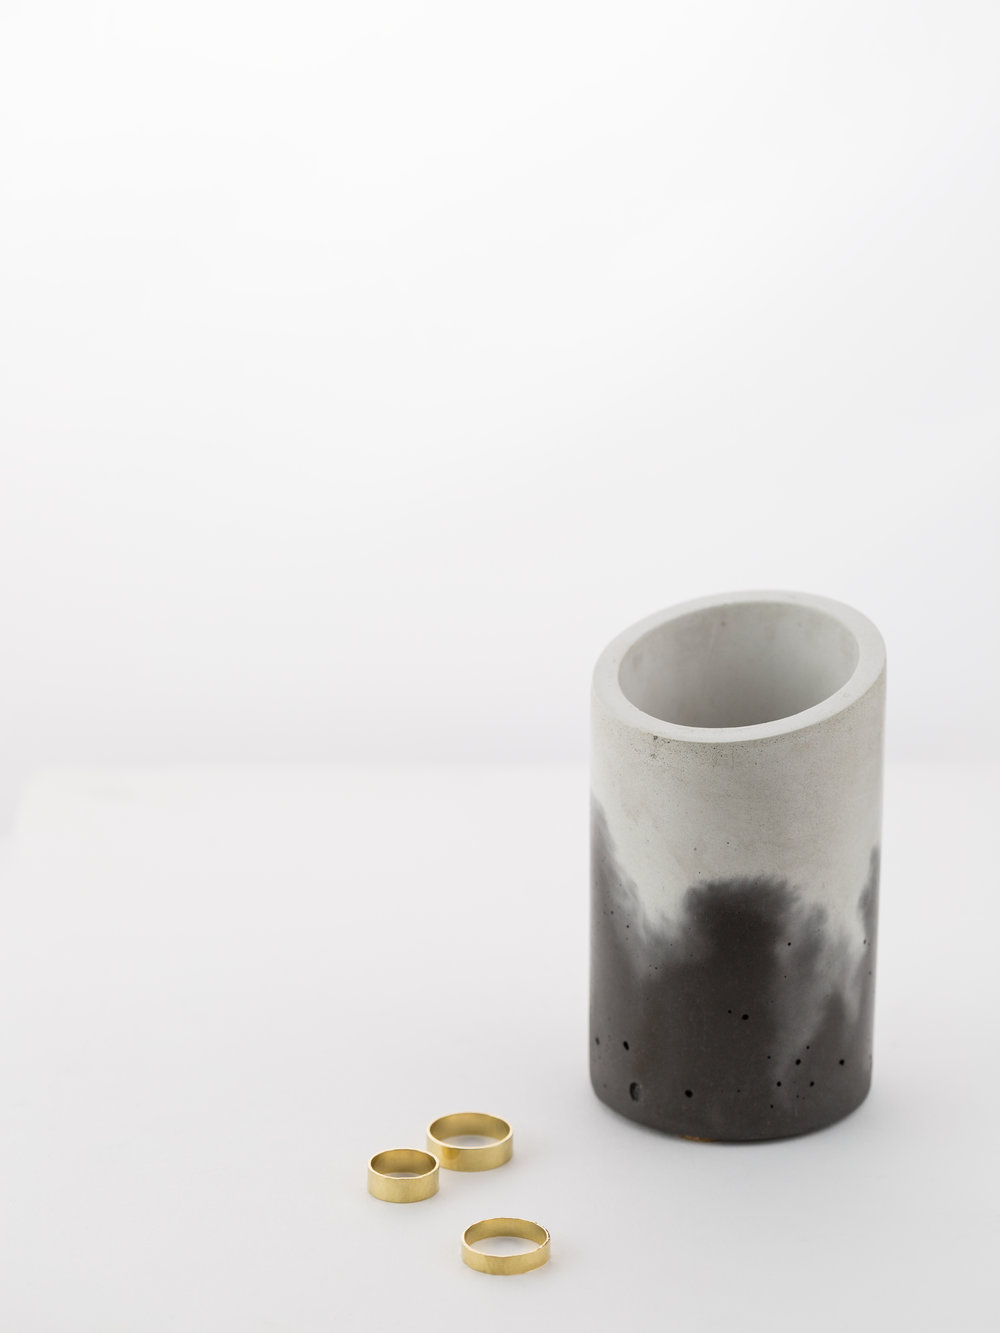 Concrete Vessel: IN.SEK.  Rings: by GLDN, coming soon.